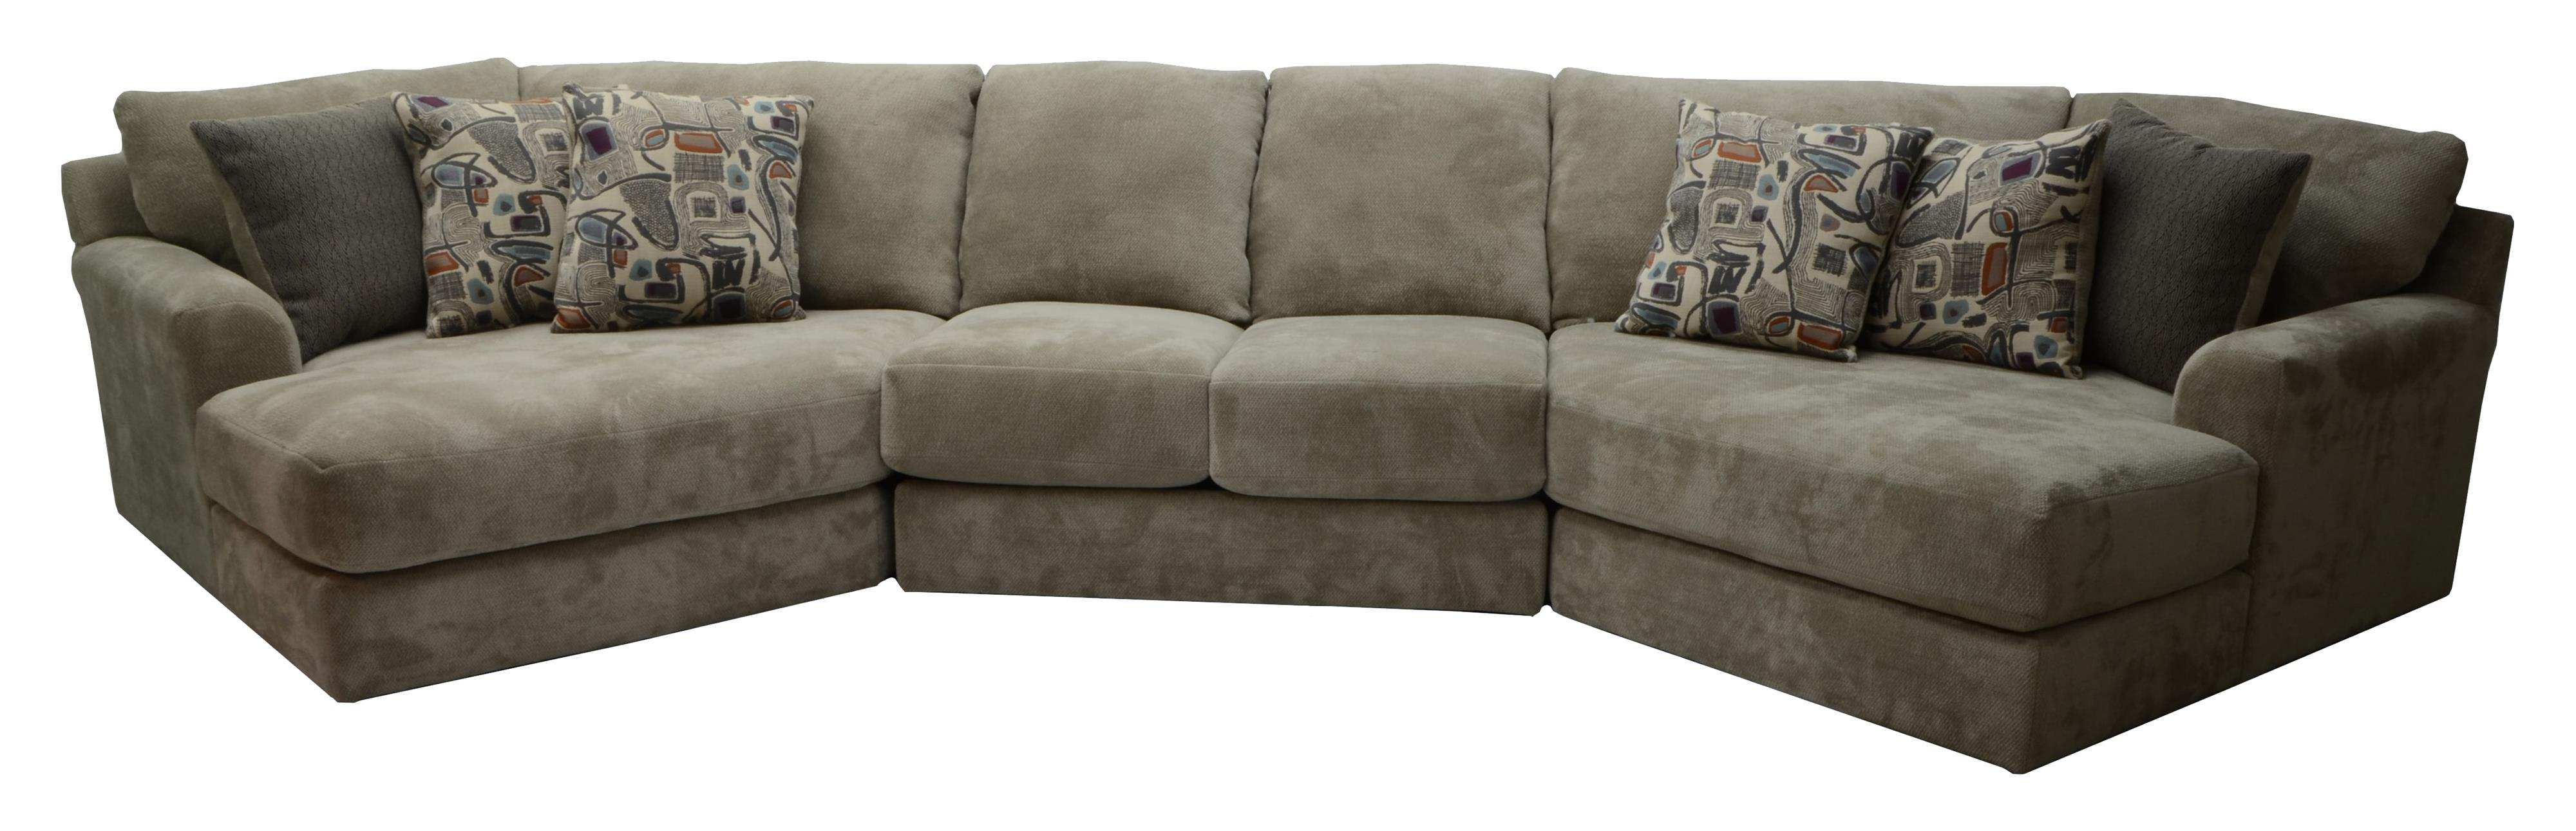 Four Seat Sectional Sofa by Jackson Furniture | Wolf Furniture